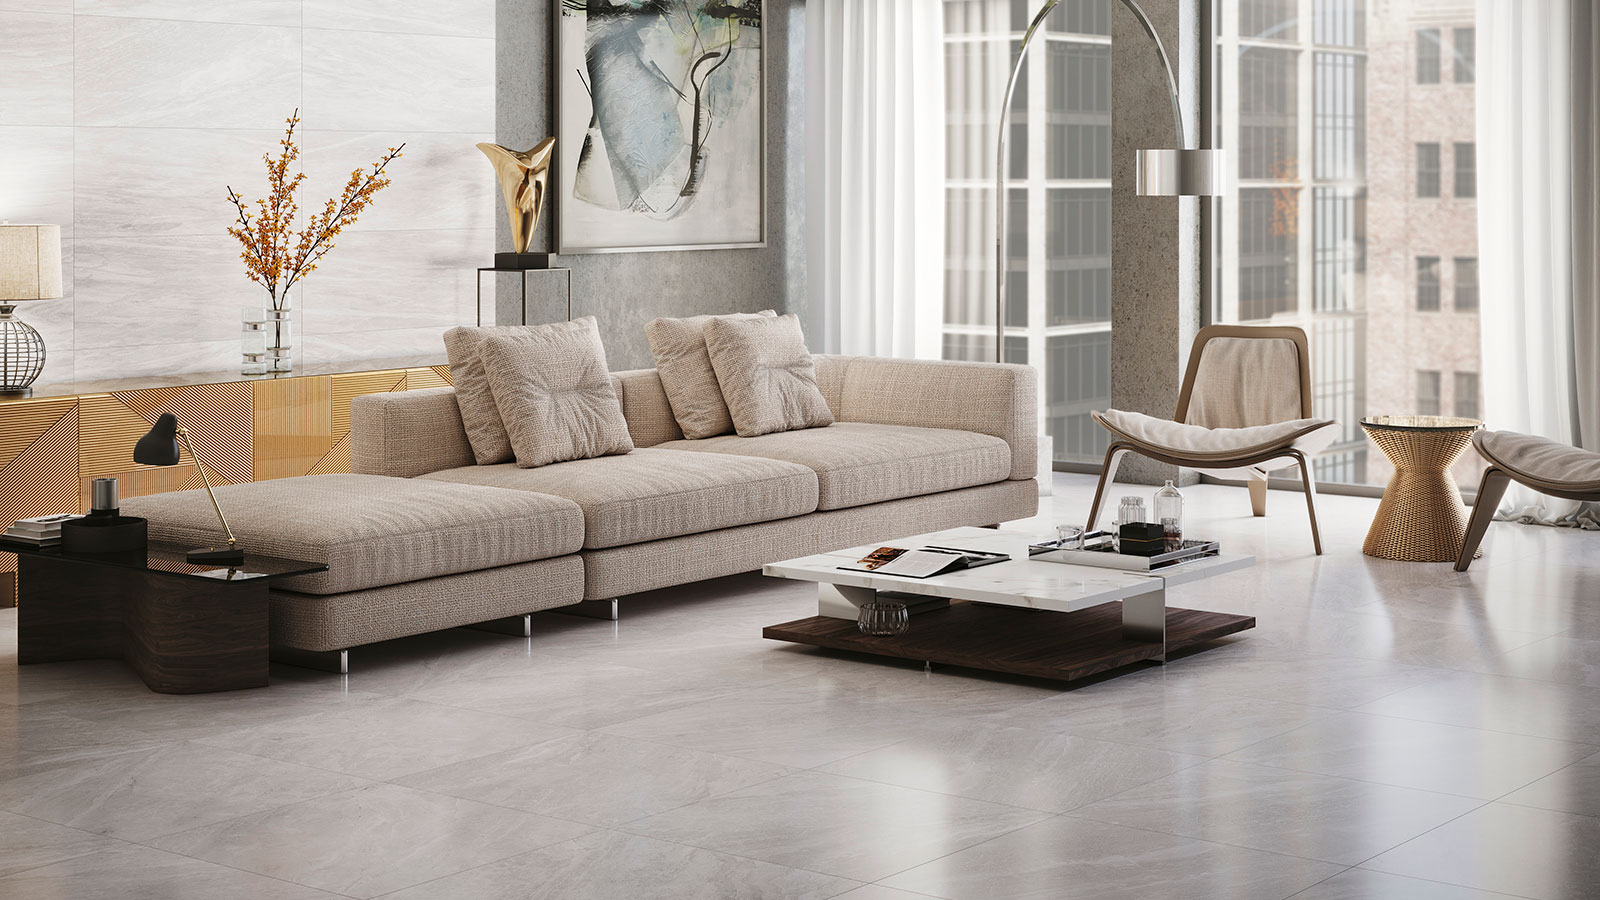 Breccia marble rejuvenates with the Indic collection from Venis